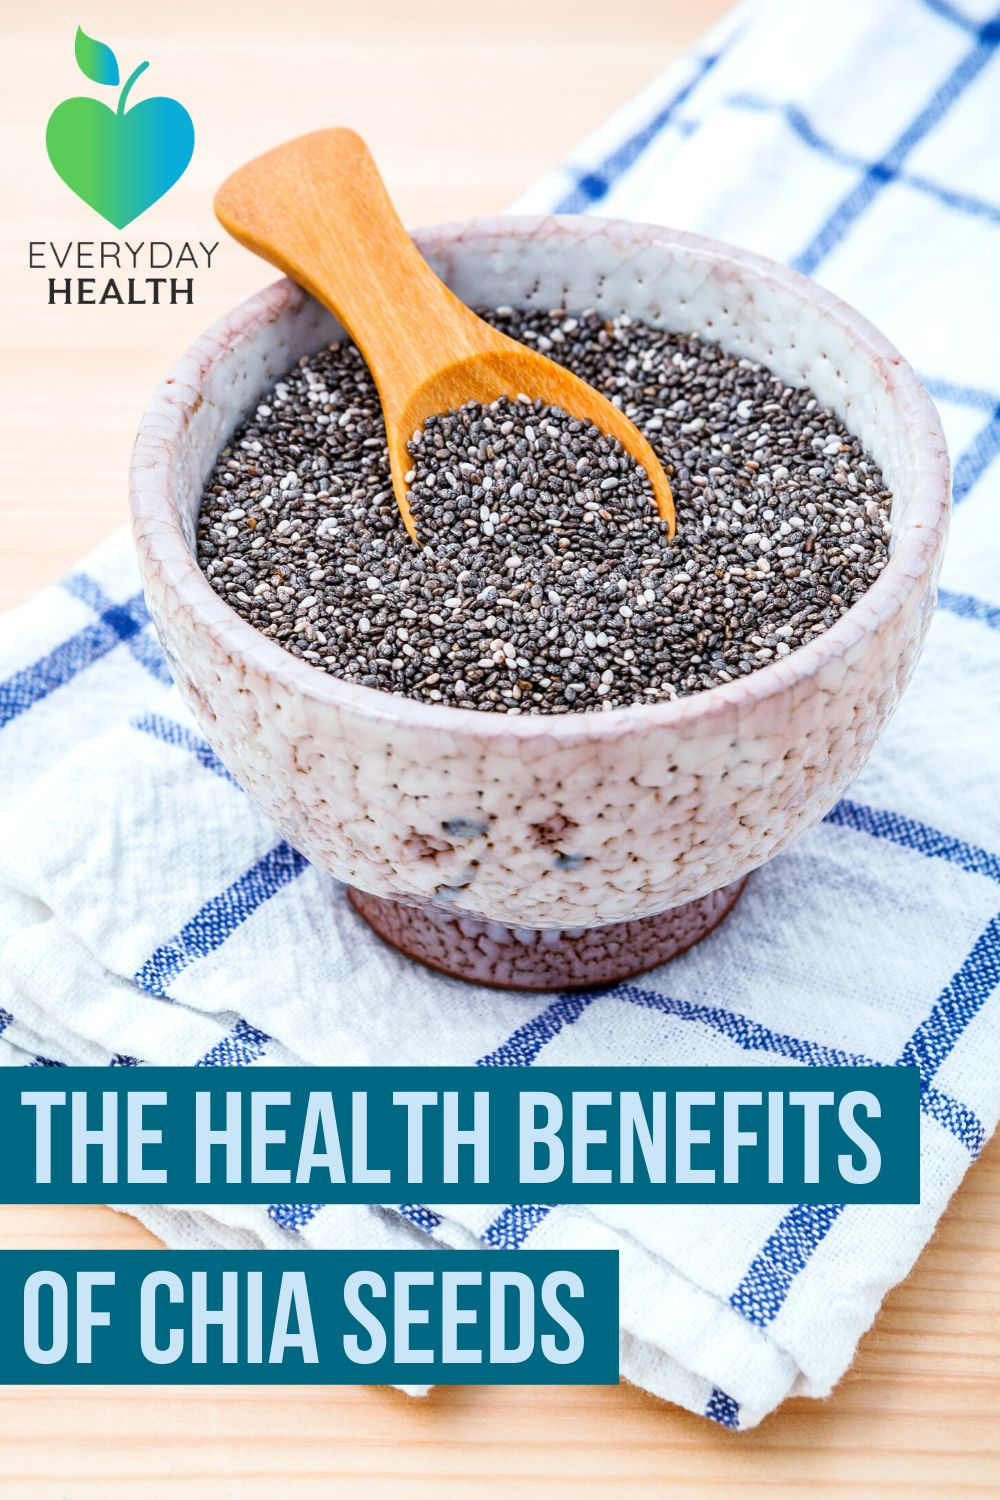 Chia Seeds 101: Nutrition, Health Benefits, How to Cook, and More | Everyday Health